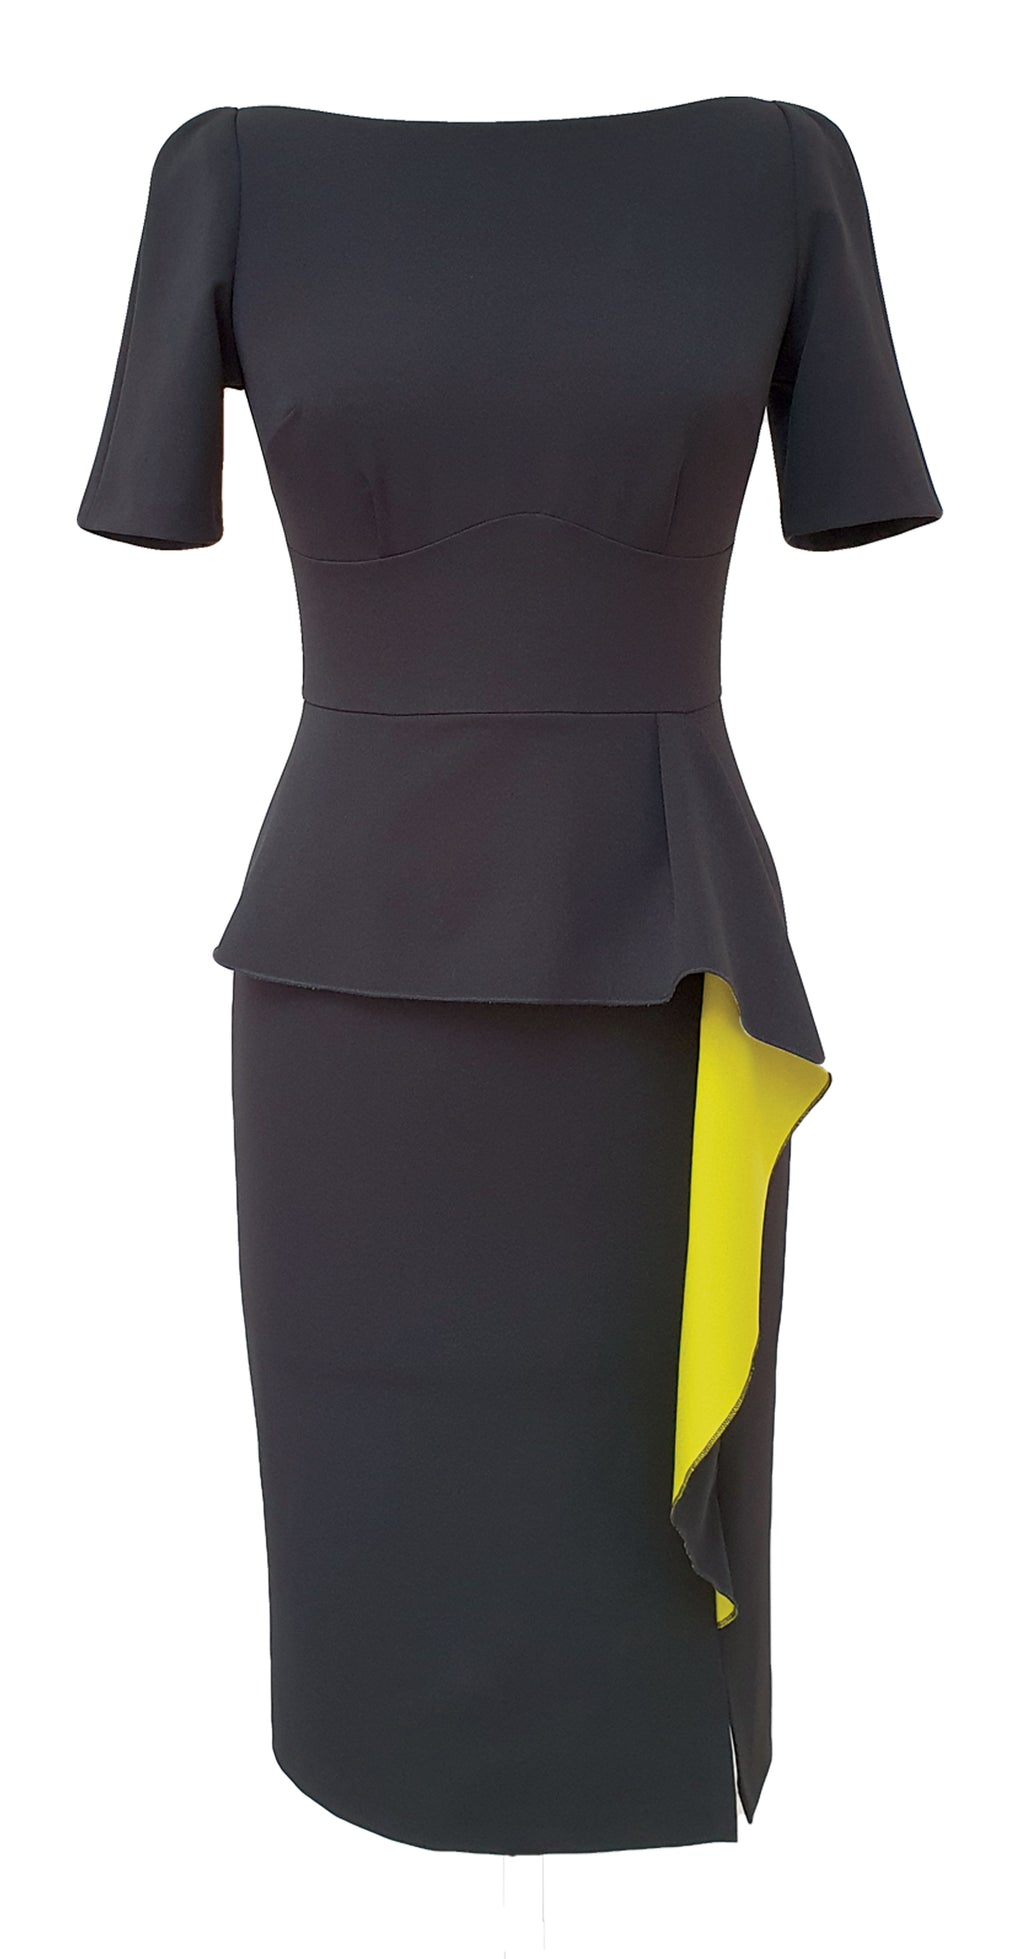 Jayne Dress DRC300 Black/Yellow Contrast Crepe